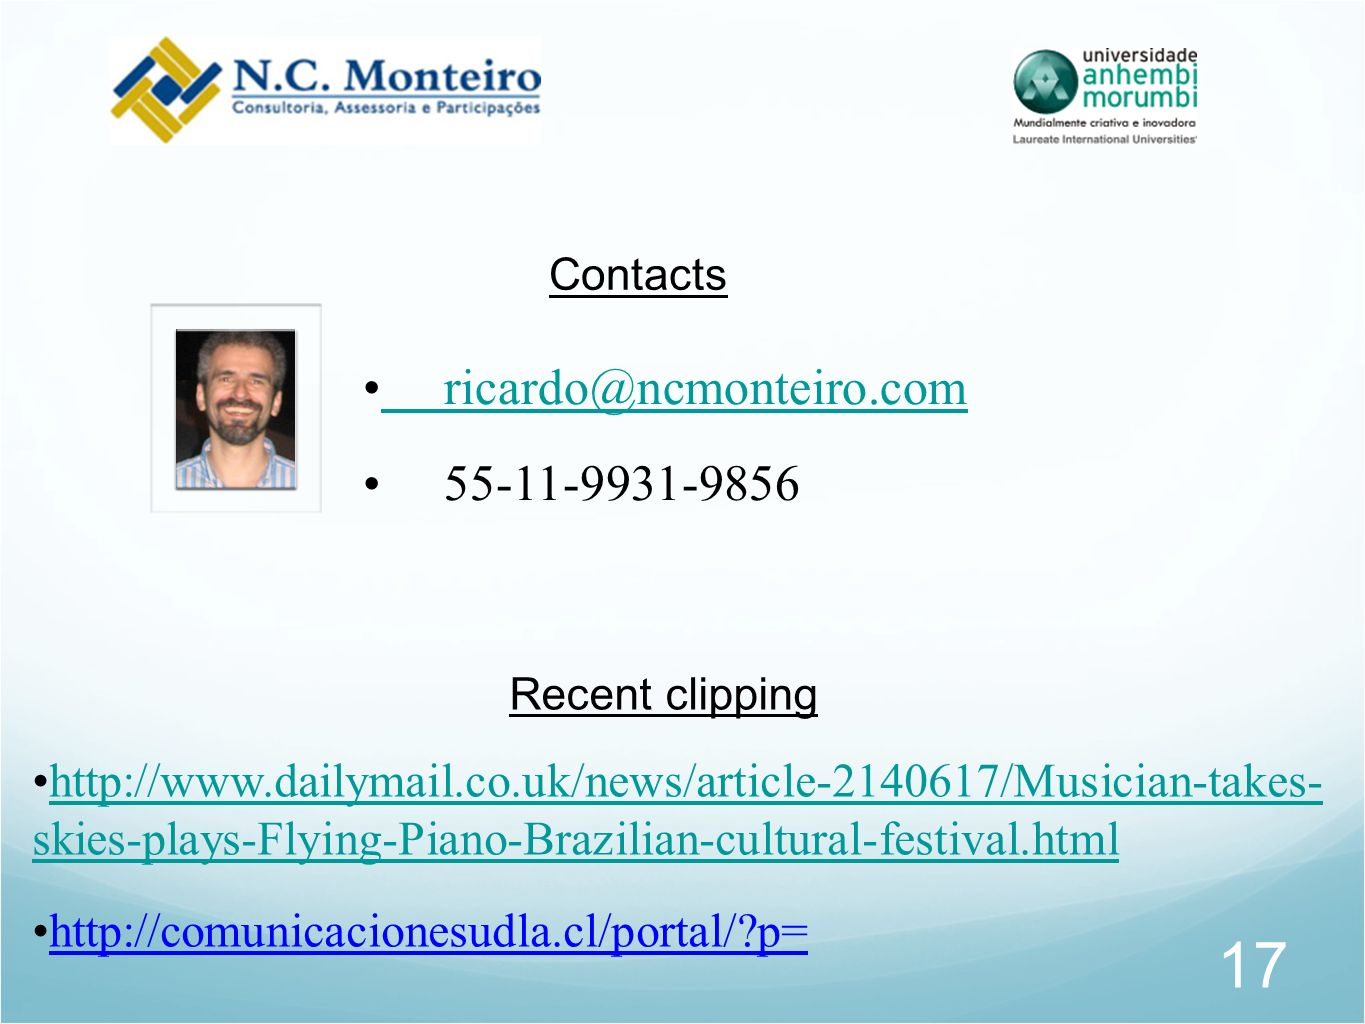 17 ricardo@ncmonteiro.com ricardo@ncmonteiro.com 55-11-9931-9856 Contacts http://www.dailymail.co.uk/news/article-2140617/Musician-takes- skies-plays-